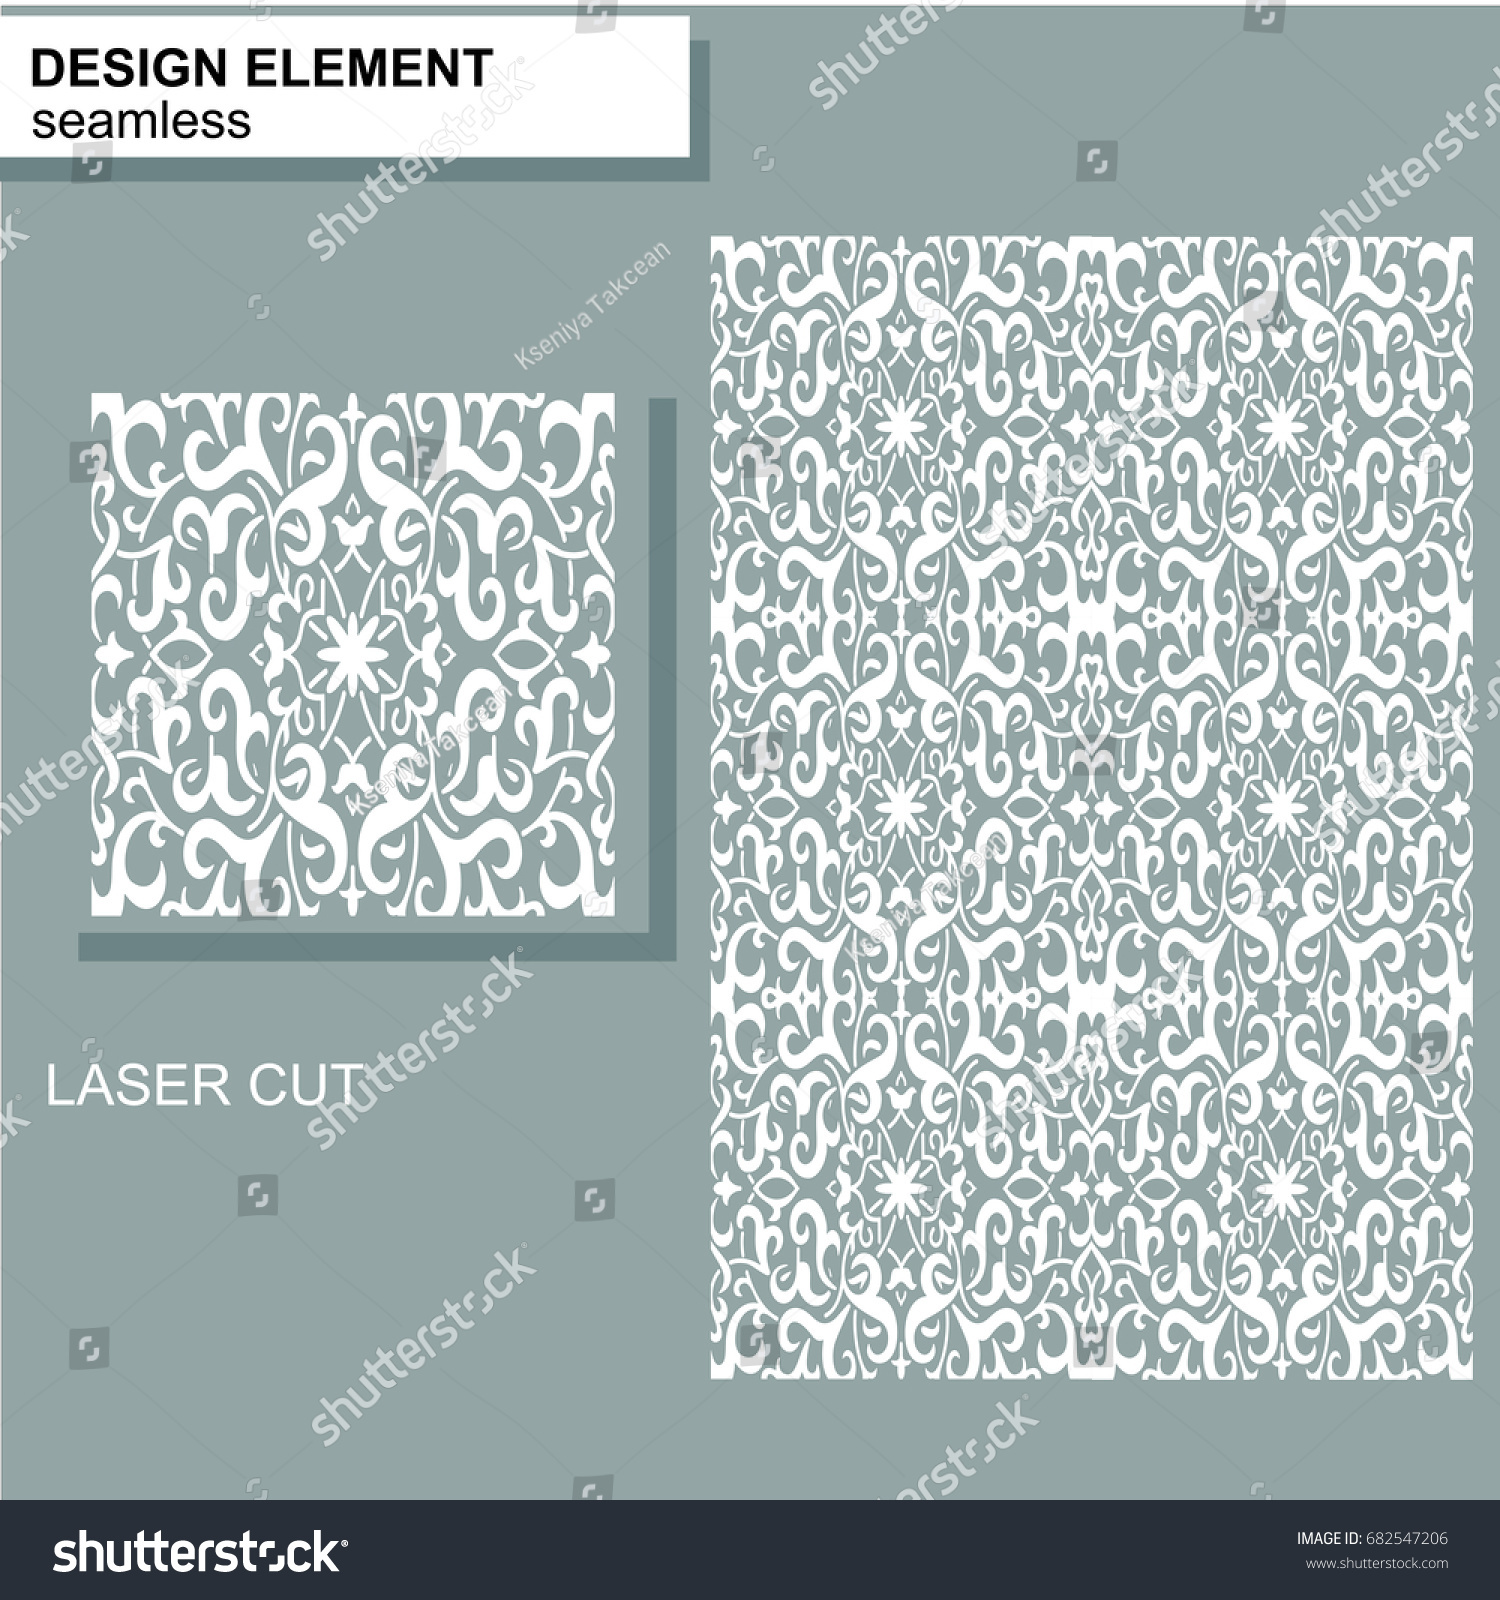 Laser Cut Decorative Vector Template Design Stock Vector (Royalty ...